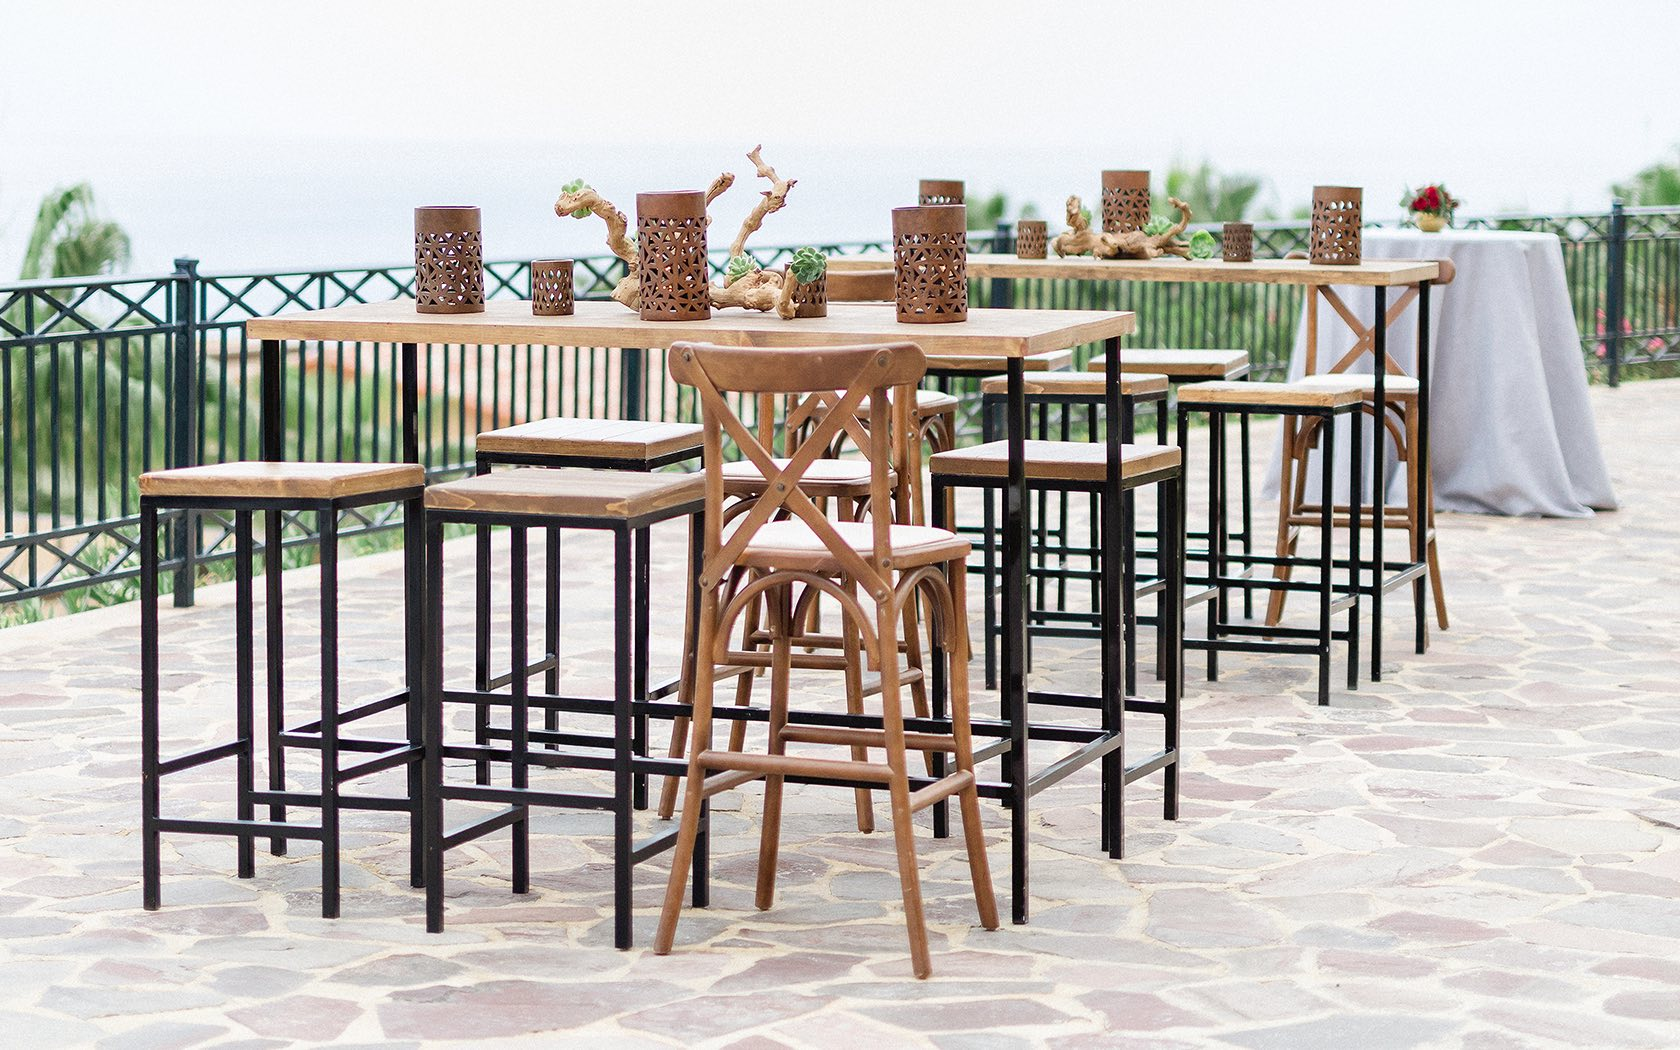 tall wooden table and chairs in outside venue